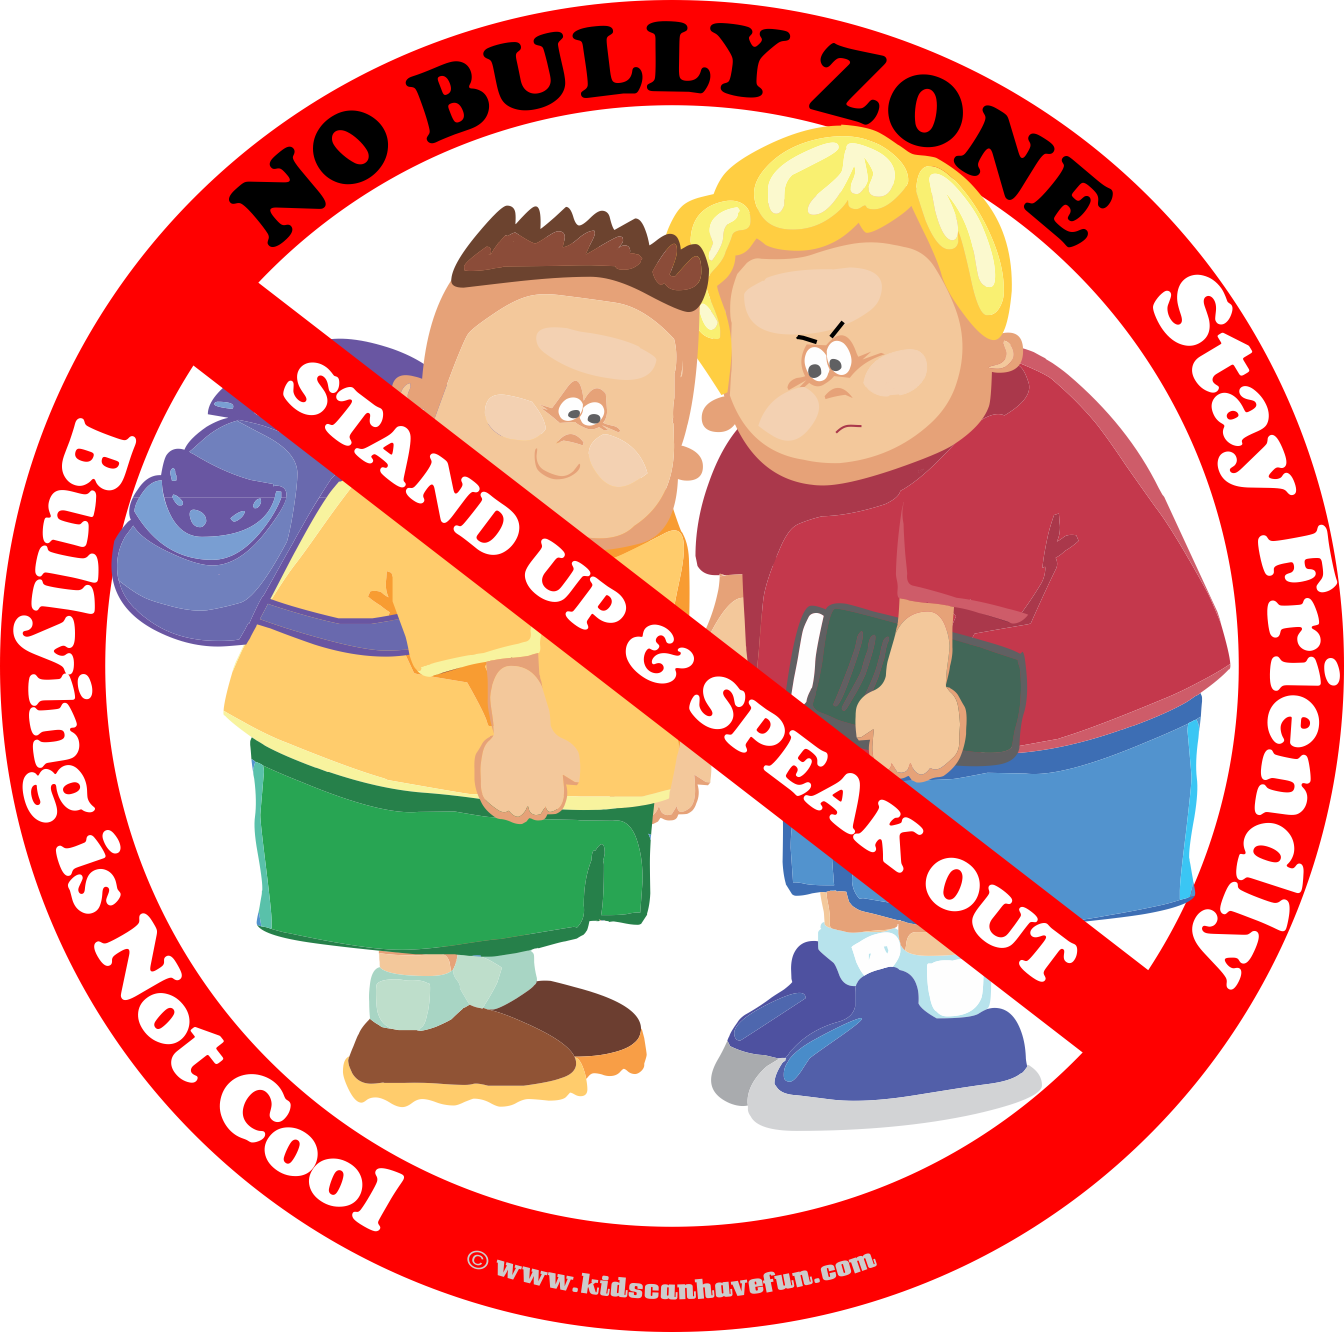 Yelling clipart verbal bullying. No bully zone poster